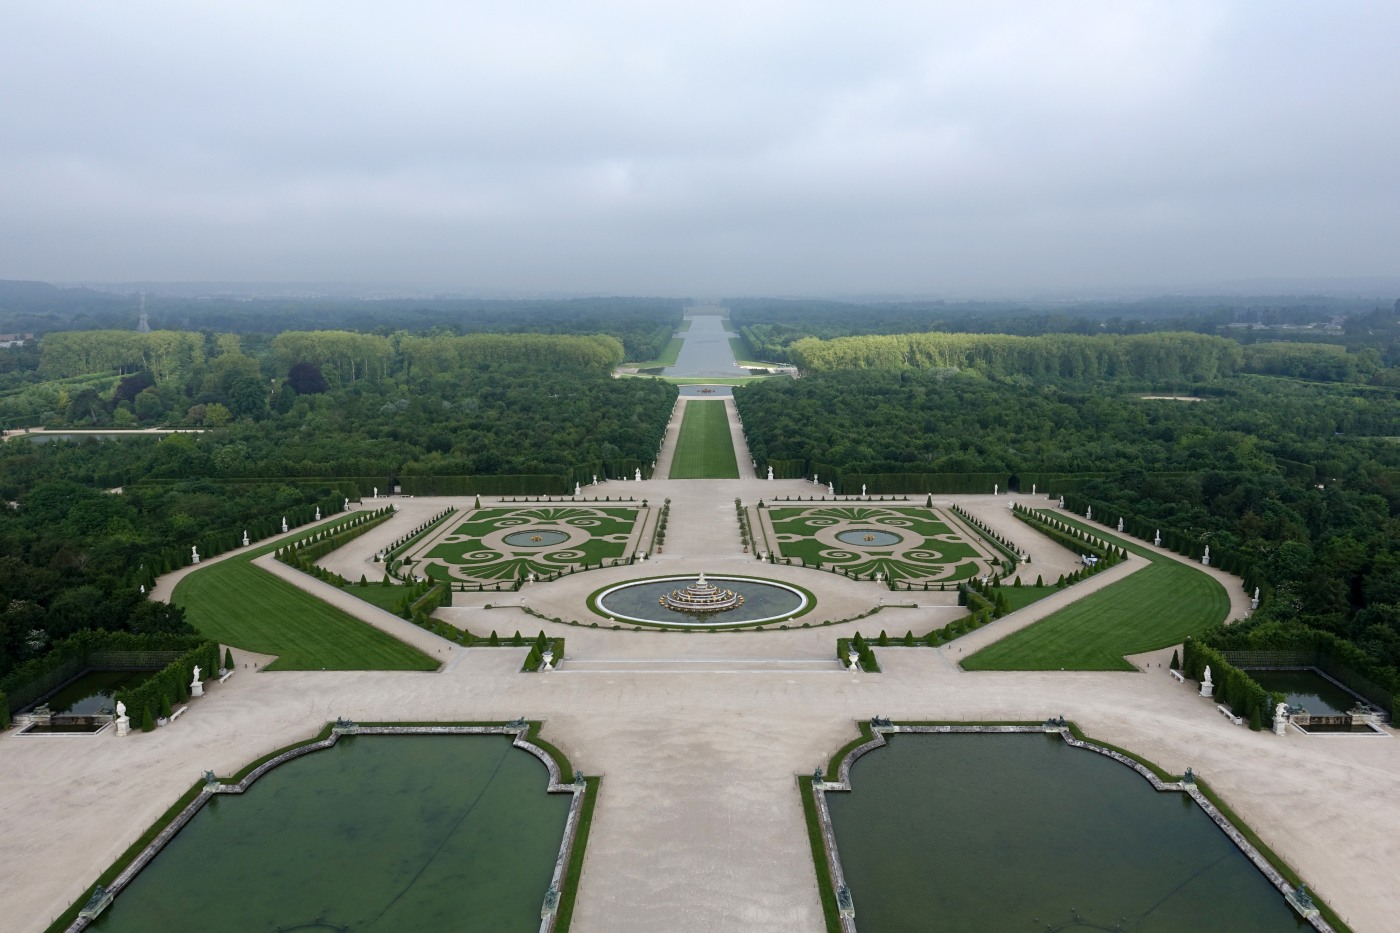 Versaille Jardin A Winter Voyage At The Palace Of Versailles In Conjunction With The Pa